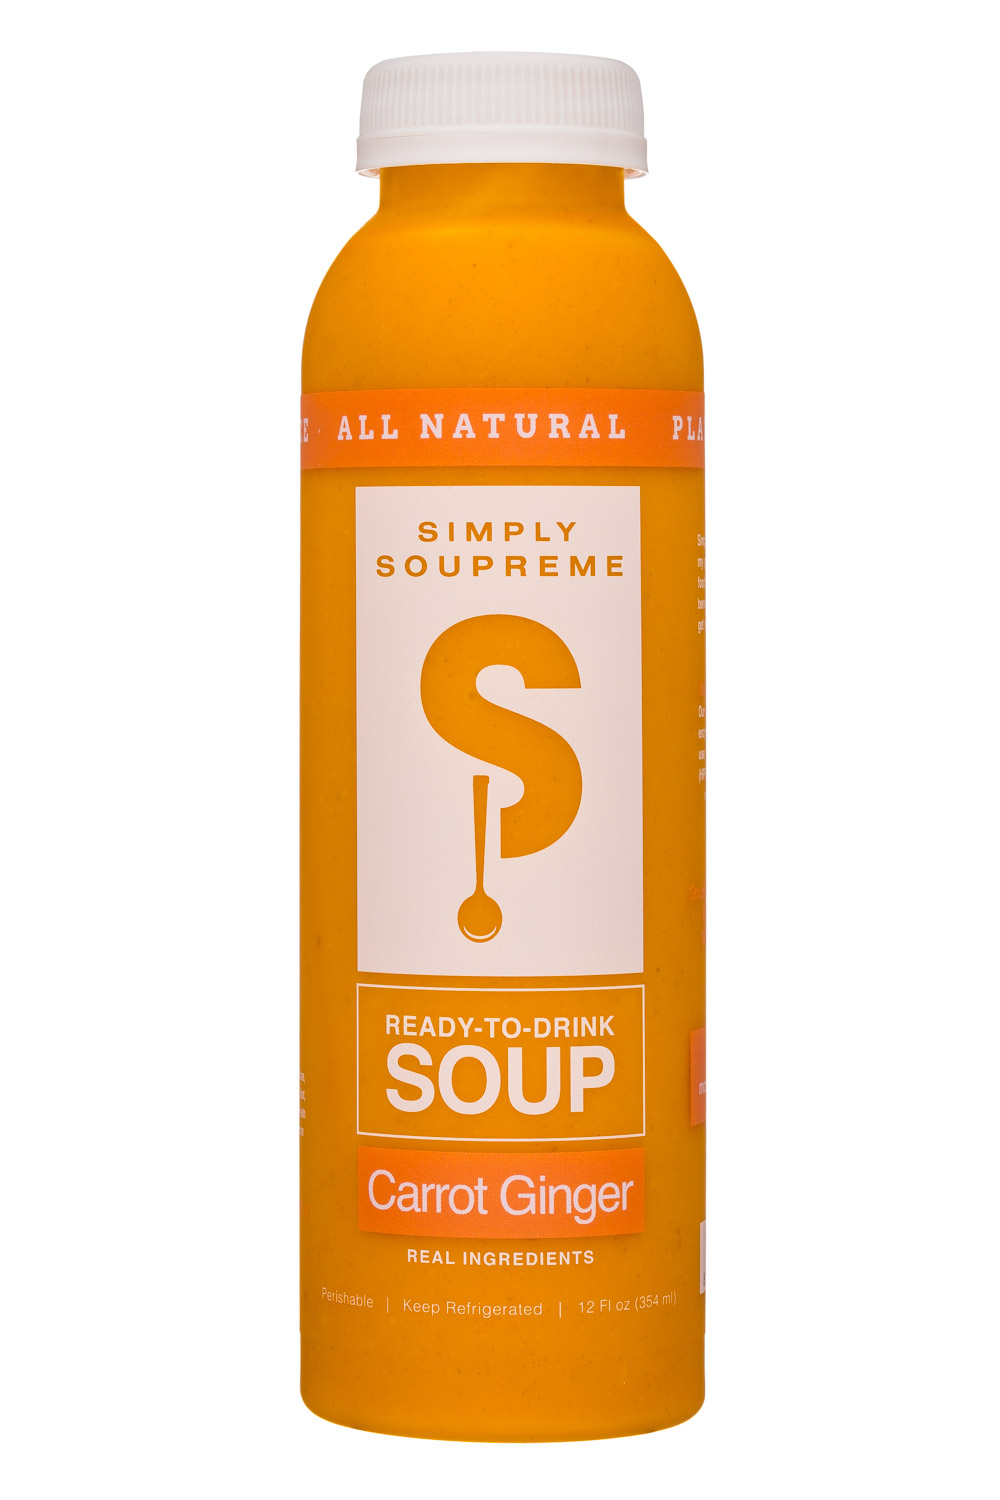 Carrot Ginger